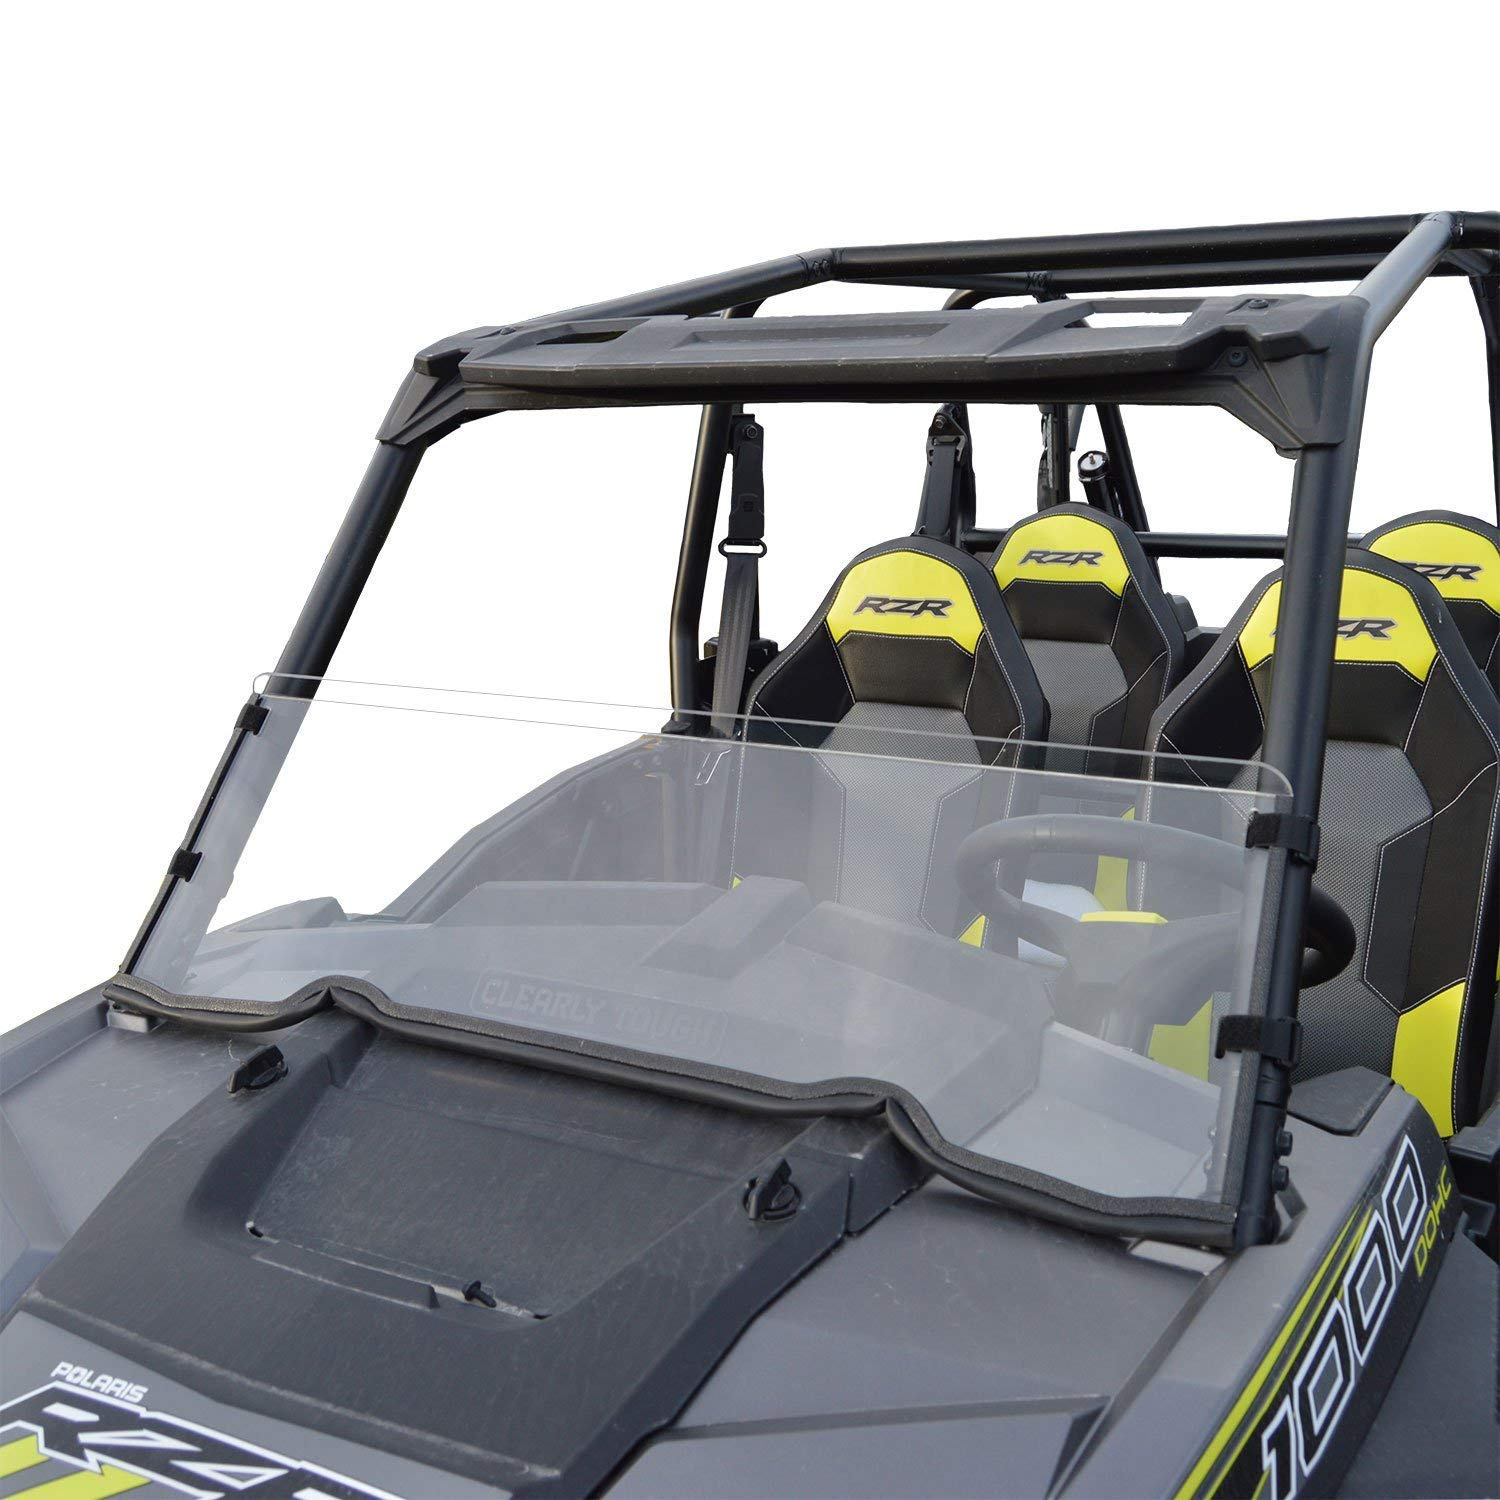 Clearly Tough Polaris RZR 1000 Windshield - Half -Scratch Resistant- (2015 & Newer 900).The Ultimate in Side by Side Versatility!Premium Polycarbonate w/Hard Coatmade in America!! Polaris RZR 1000 half windshield